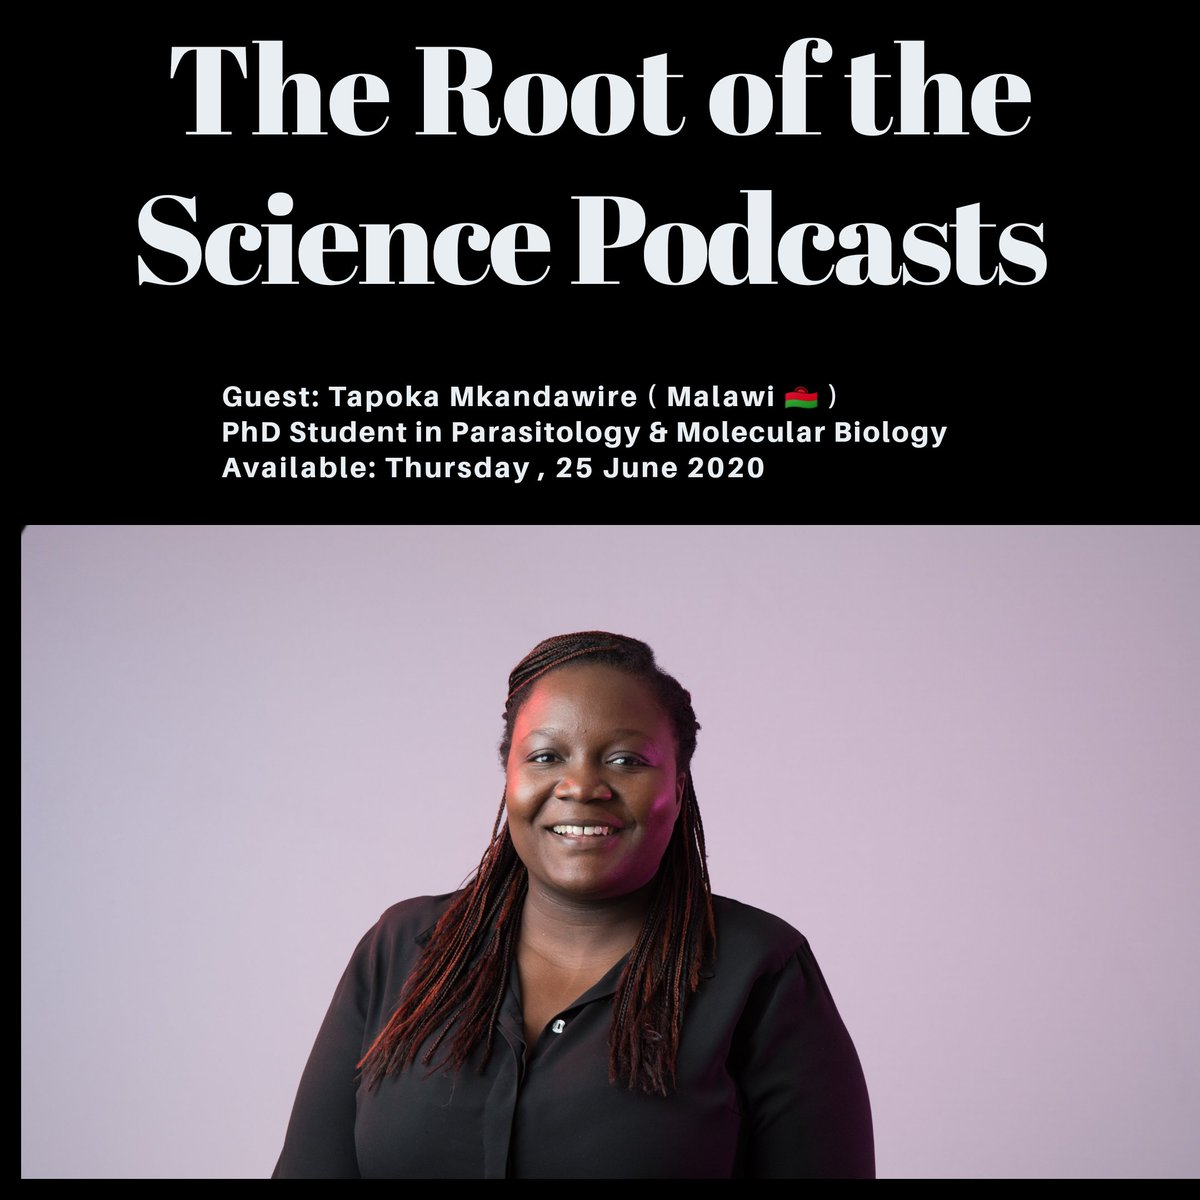 Check out my very talented friend and fellow @sangerinstitute student @TapokaM as she talks about her kickass PhD! ❤️